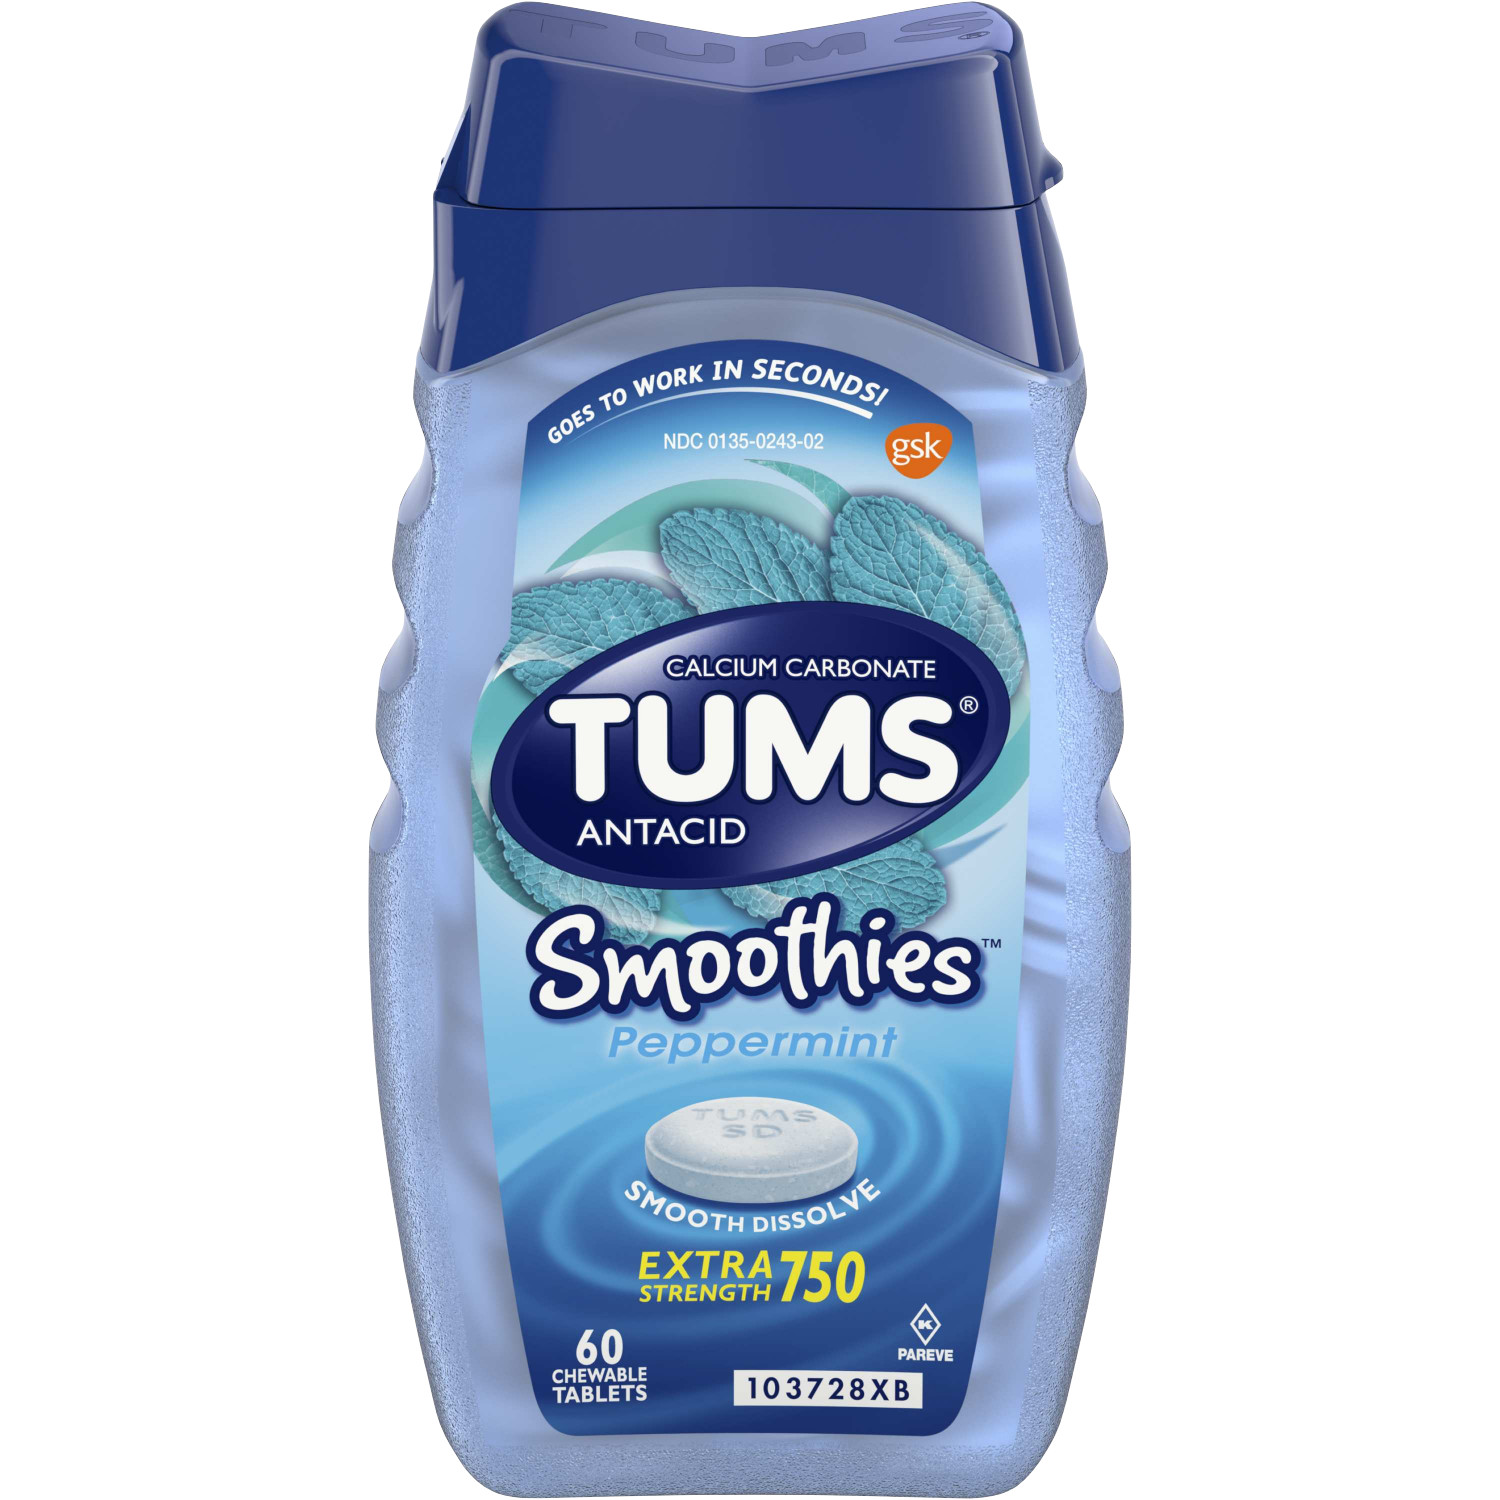 TUMS Smoothies Peppermint Extra Strength Antacid Chewable Tablets for Heartburn, 60 Tablets